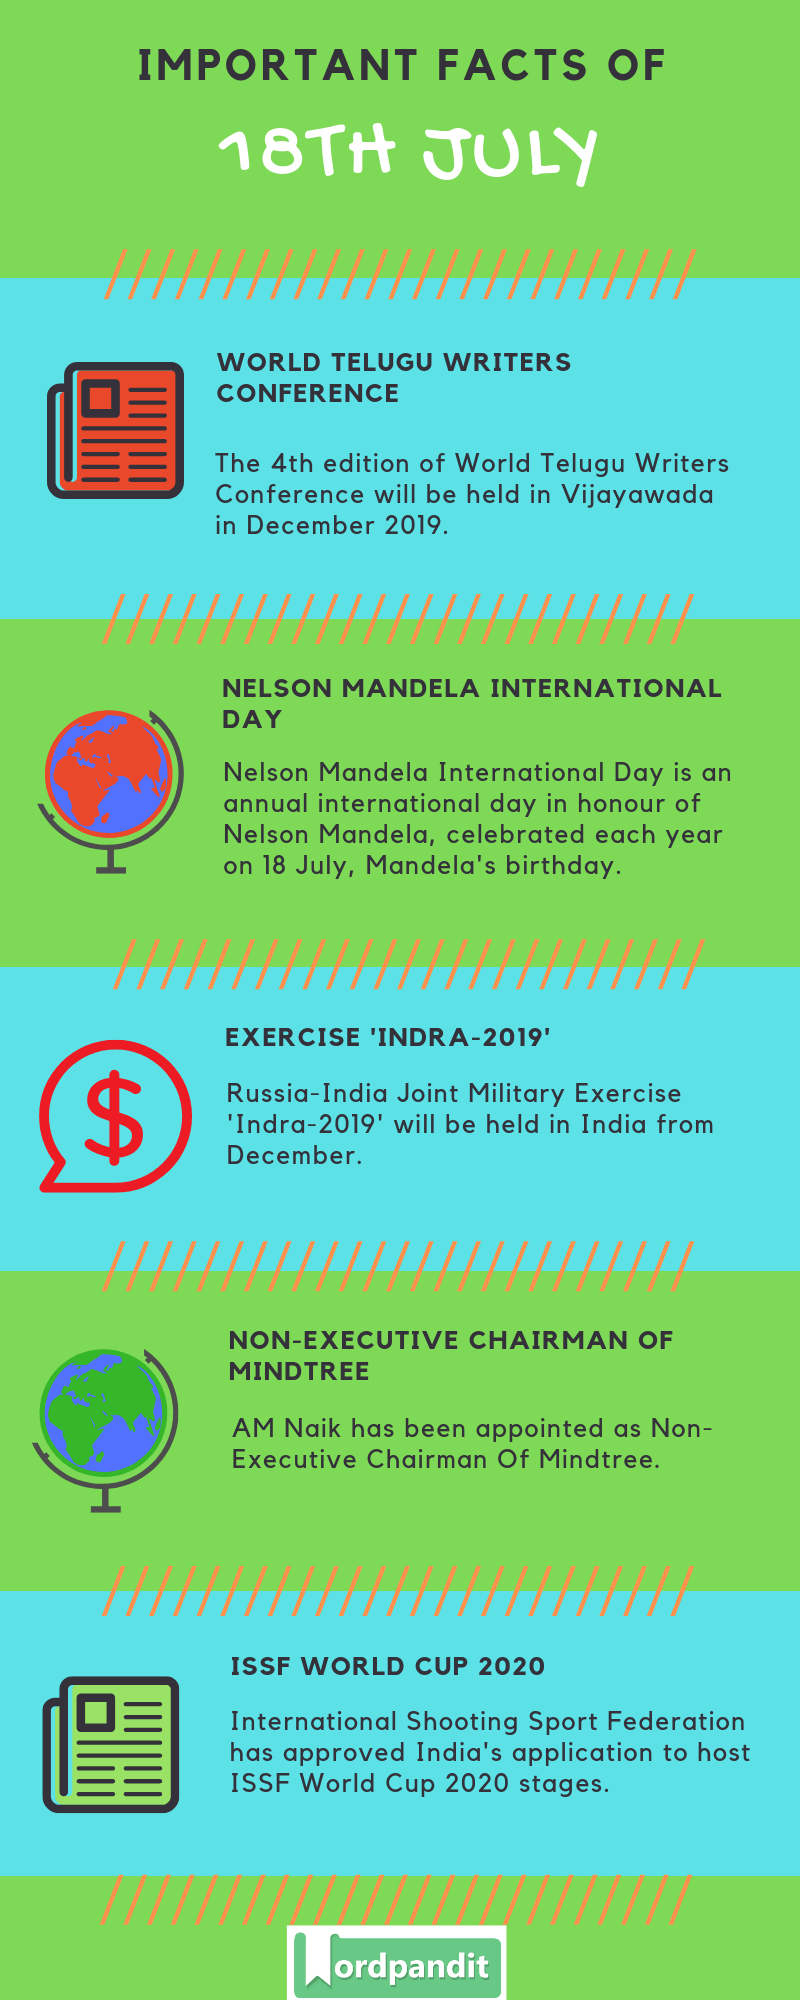 Daily Current Affairs 18 July 2019 Current Affairs Quiz 18 July 2019 Current Affairs Infographic